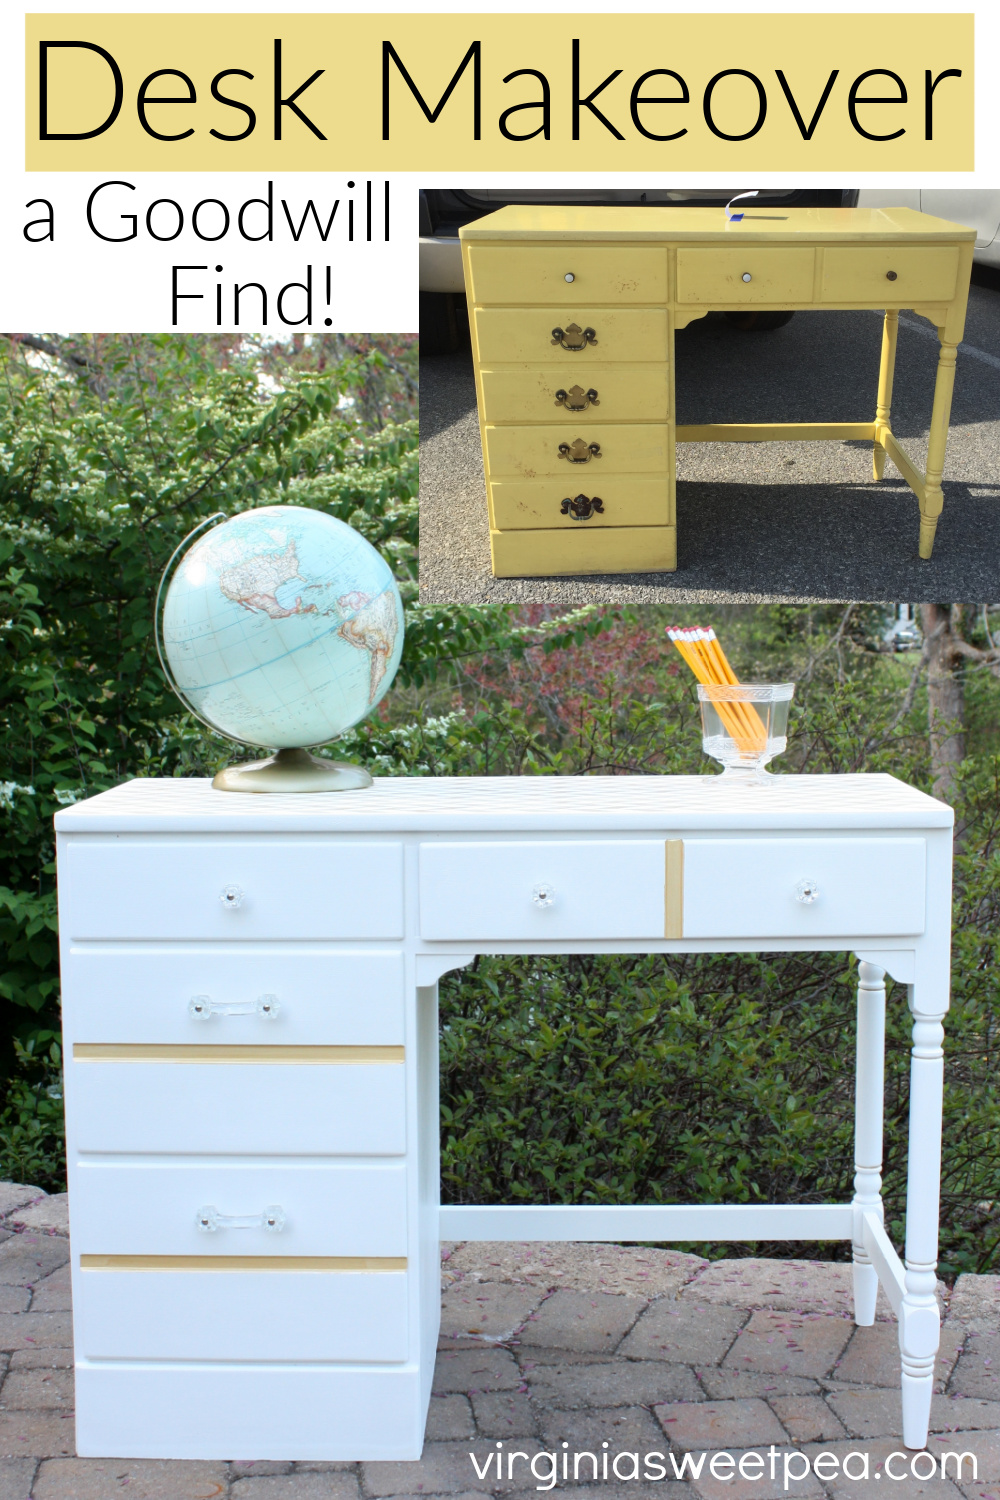 Goodwill Desk Makeover in White and Gold - A Goodwill found desk gets a feminine makeover with white and gold paint and glass knobs.  This beauty is now ready to be used and enjoyed for years to come.  #deskmakeover #ethanallen  via @spaula